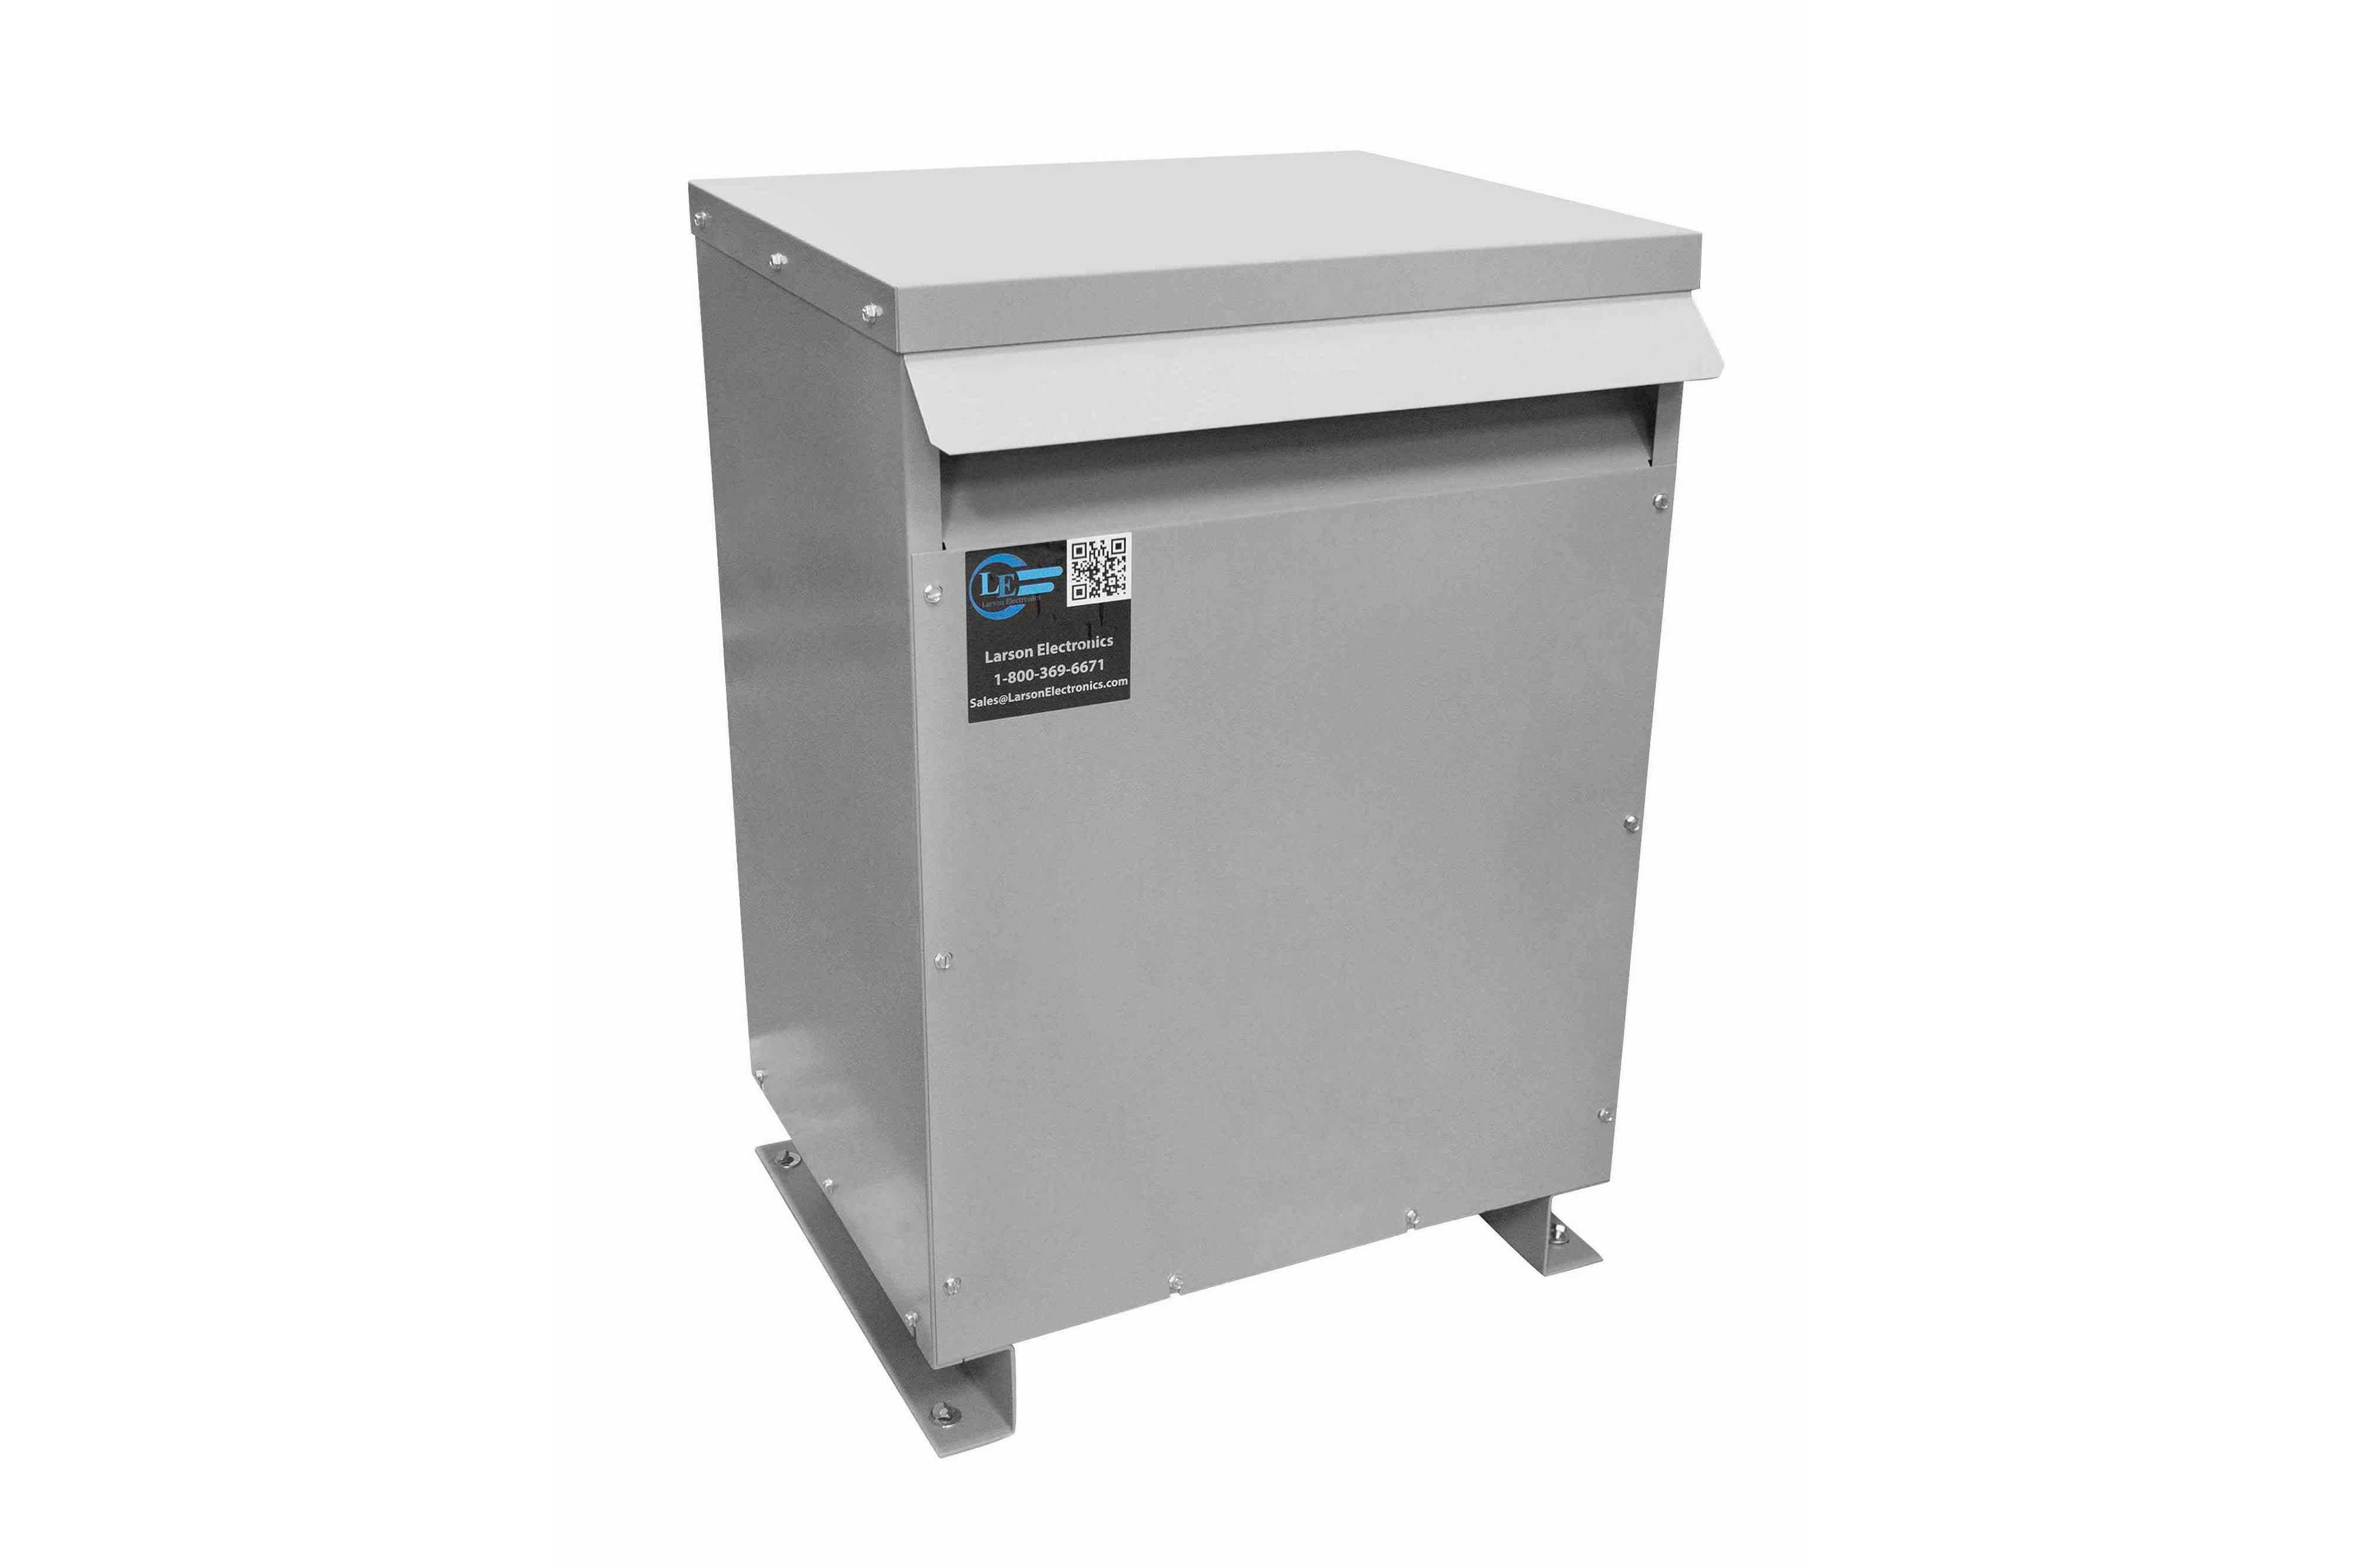 12 kVA 3PH Isolation Transformer, 240V Wye Primary, 380V Delta Secondary, N3R, Ventilated, 60 Hz